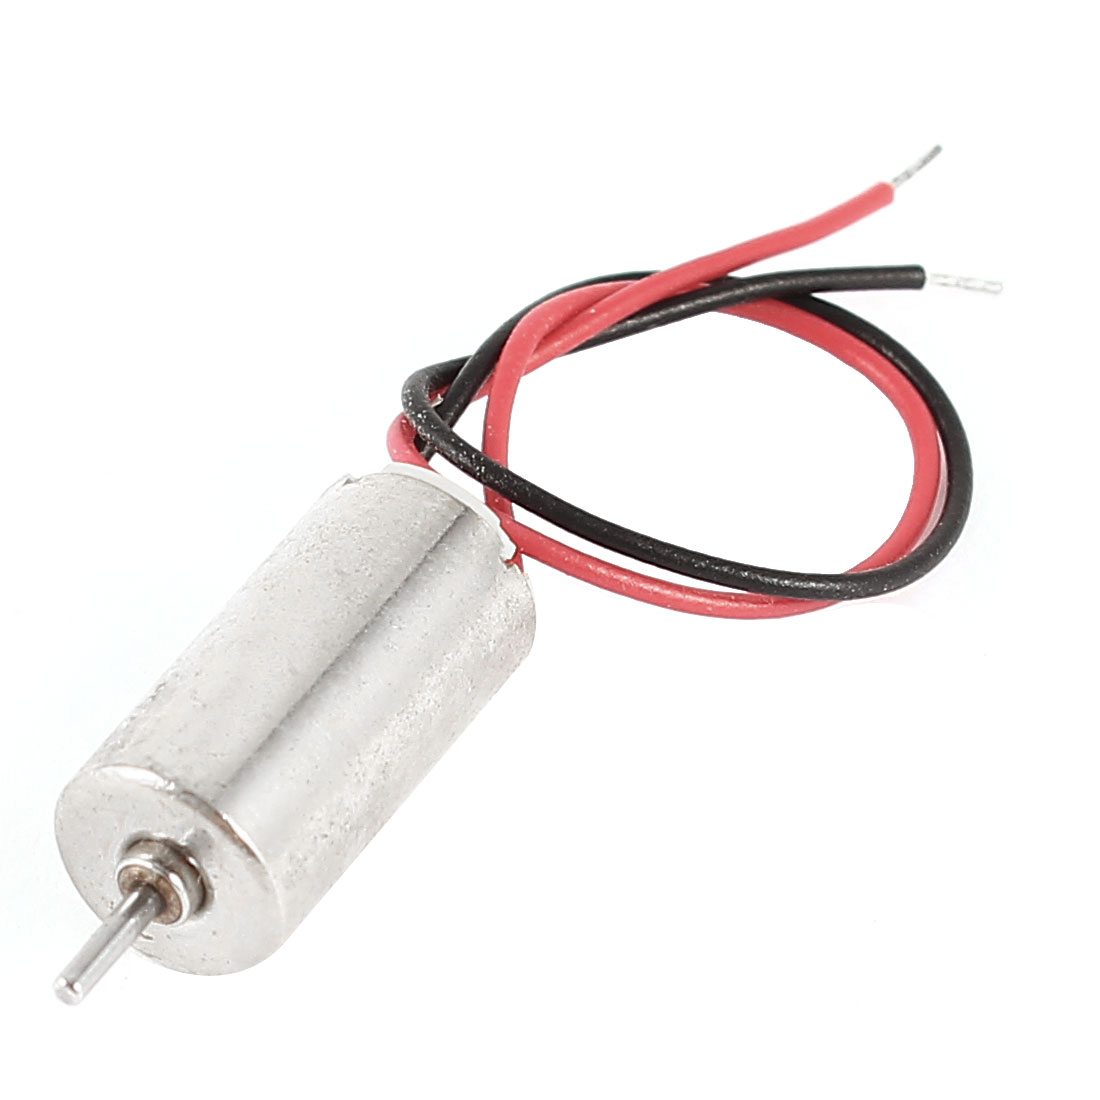 DC 1.5-6V 50000RPM Electric Coreless Mini Motor 6x14mm for RC Toys DIY